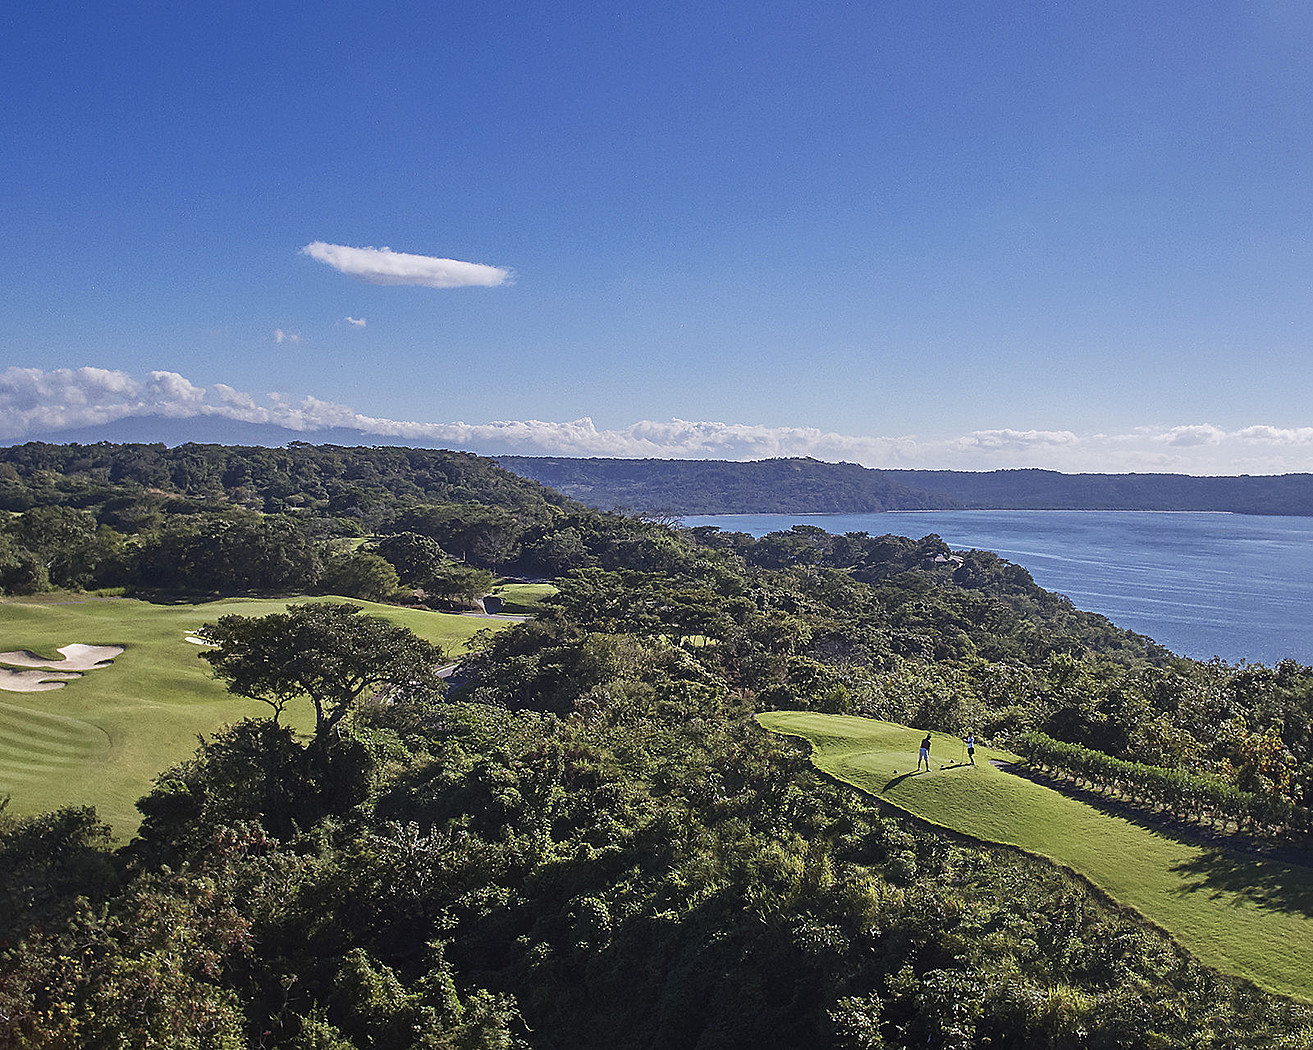 Enjoy a one of a kind golf experience in Costa Rica